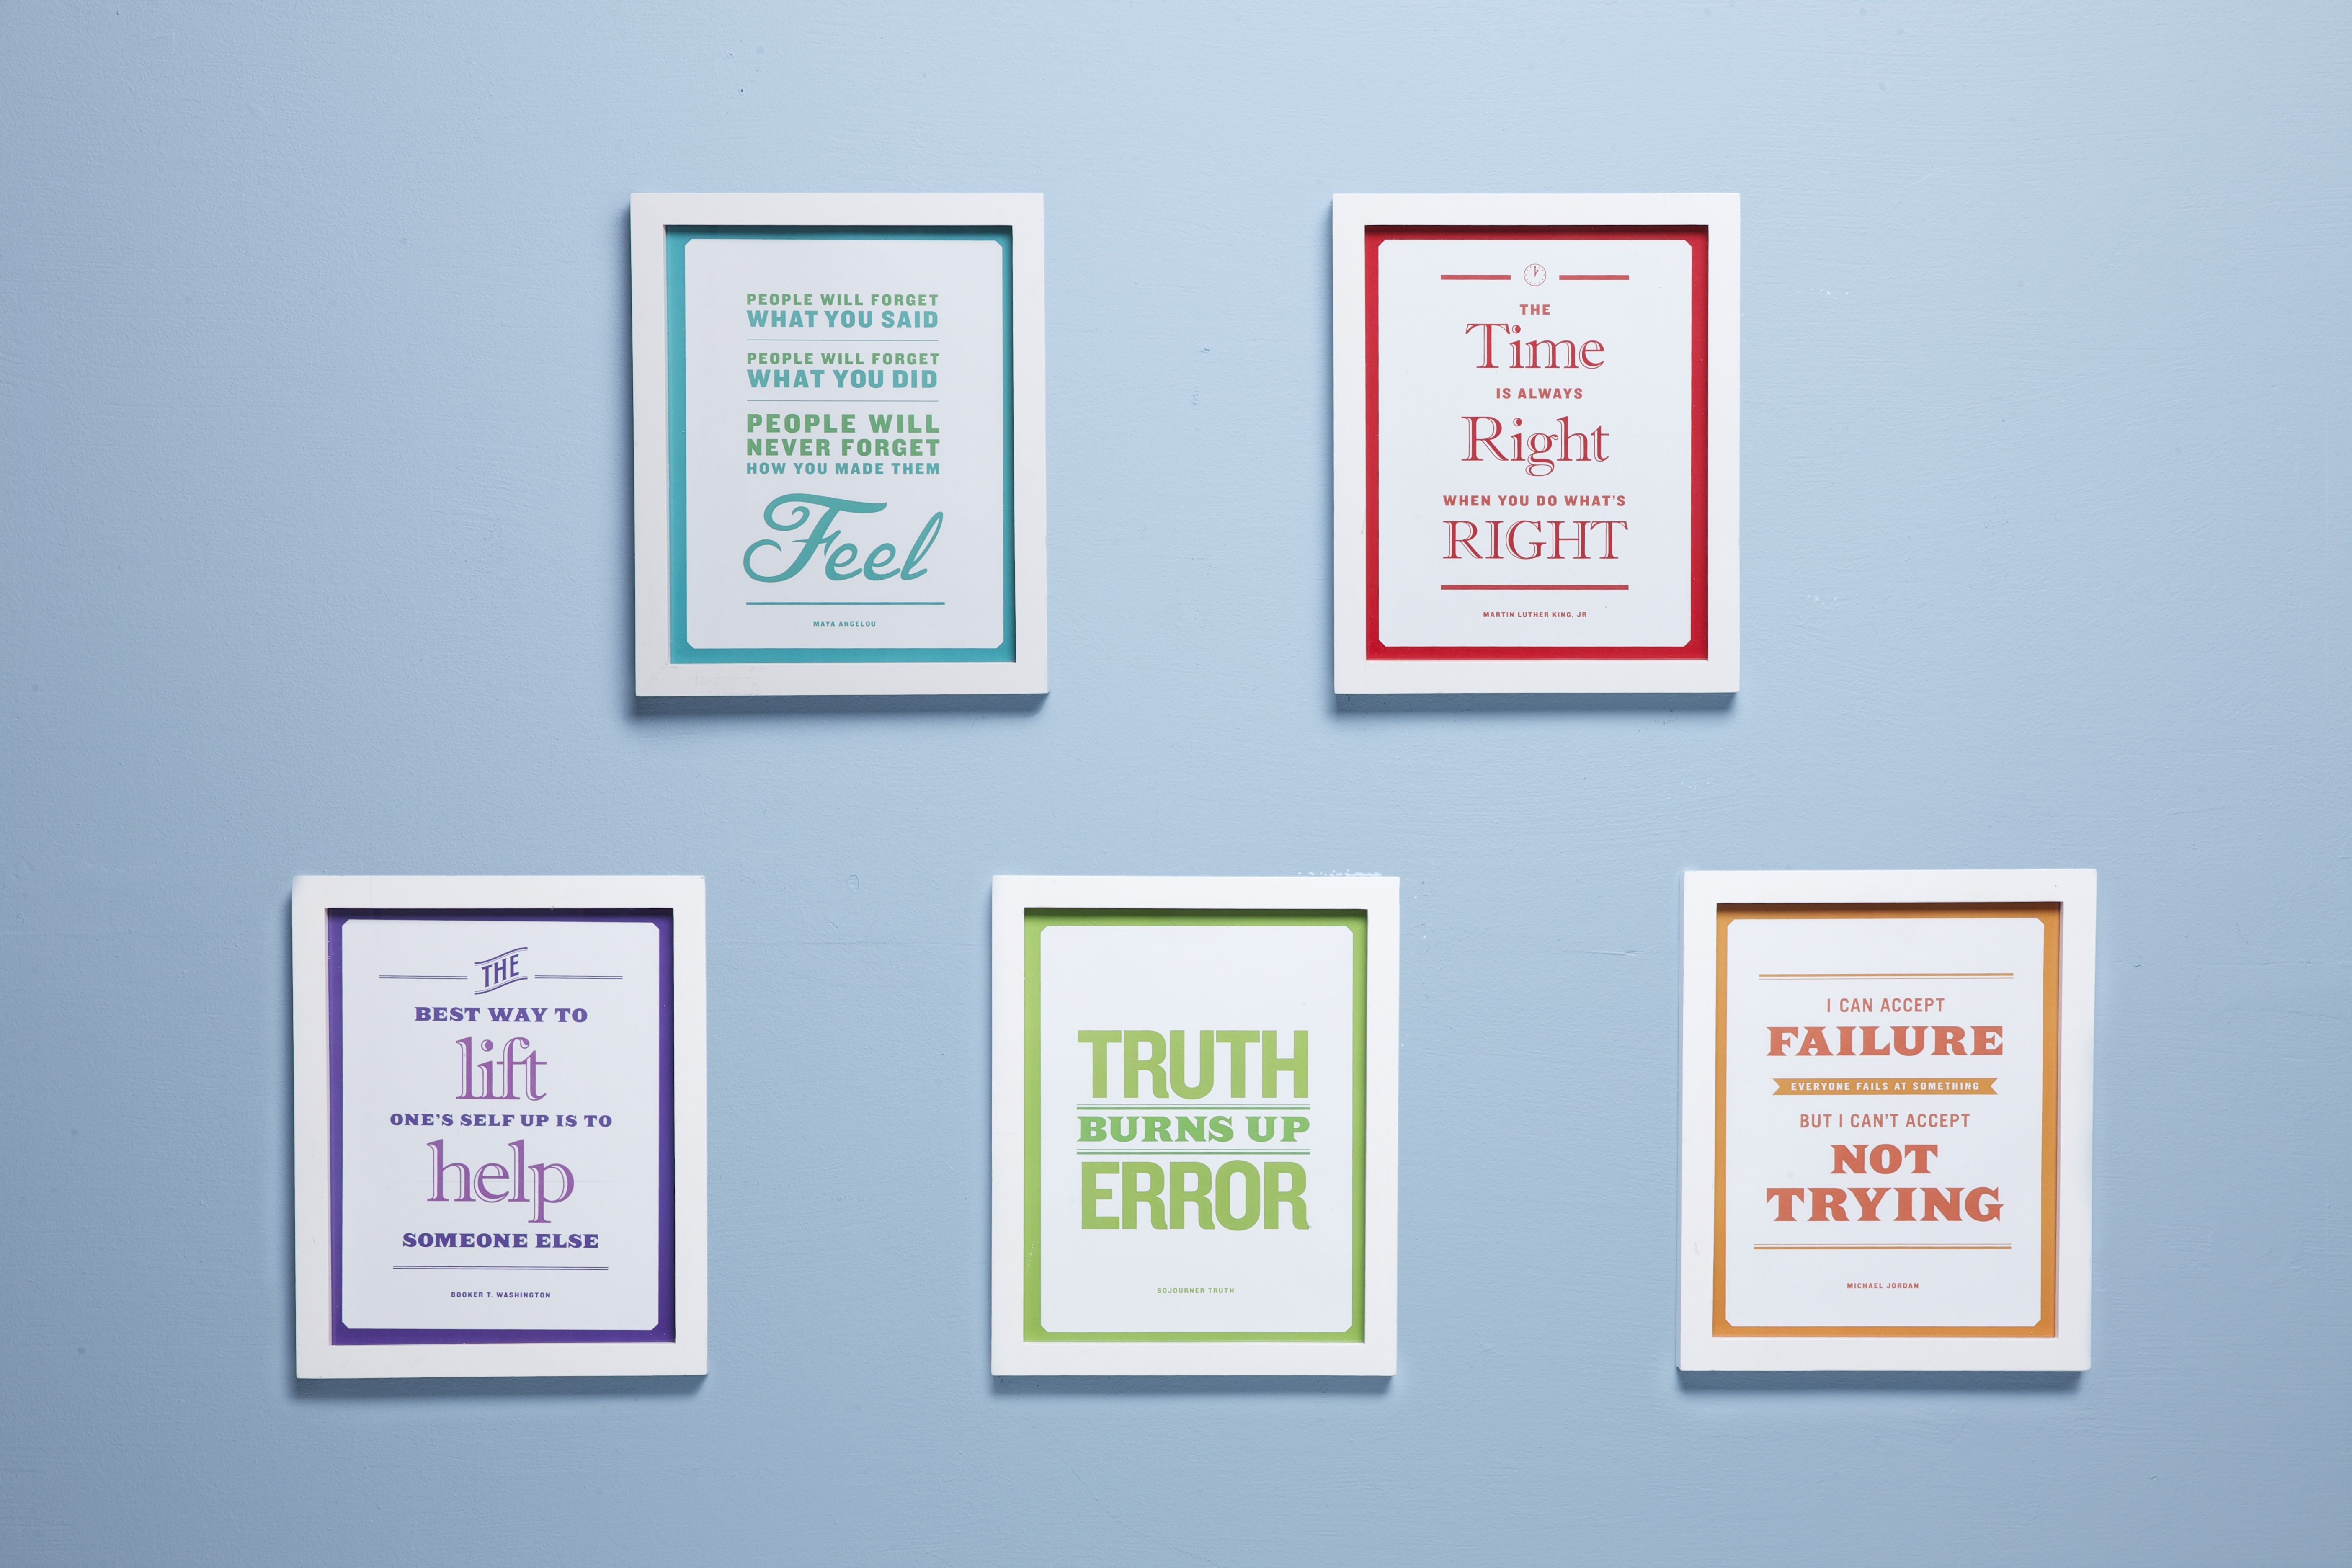 Freebie Mini Posters For Black History Month From Scholastic Quotes From Famous Civil Rights